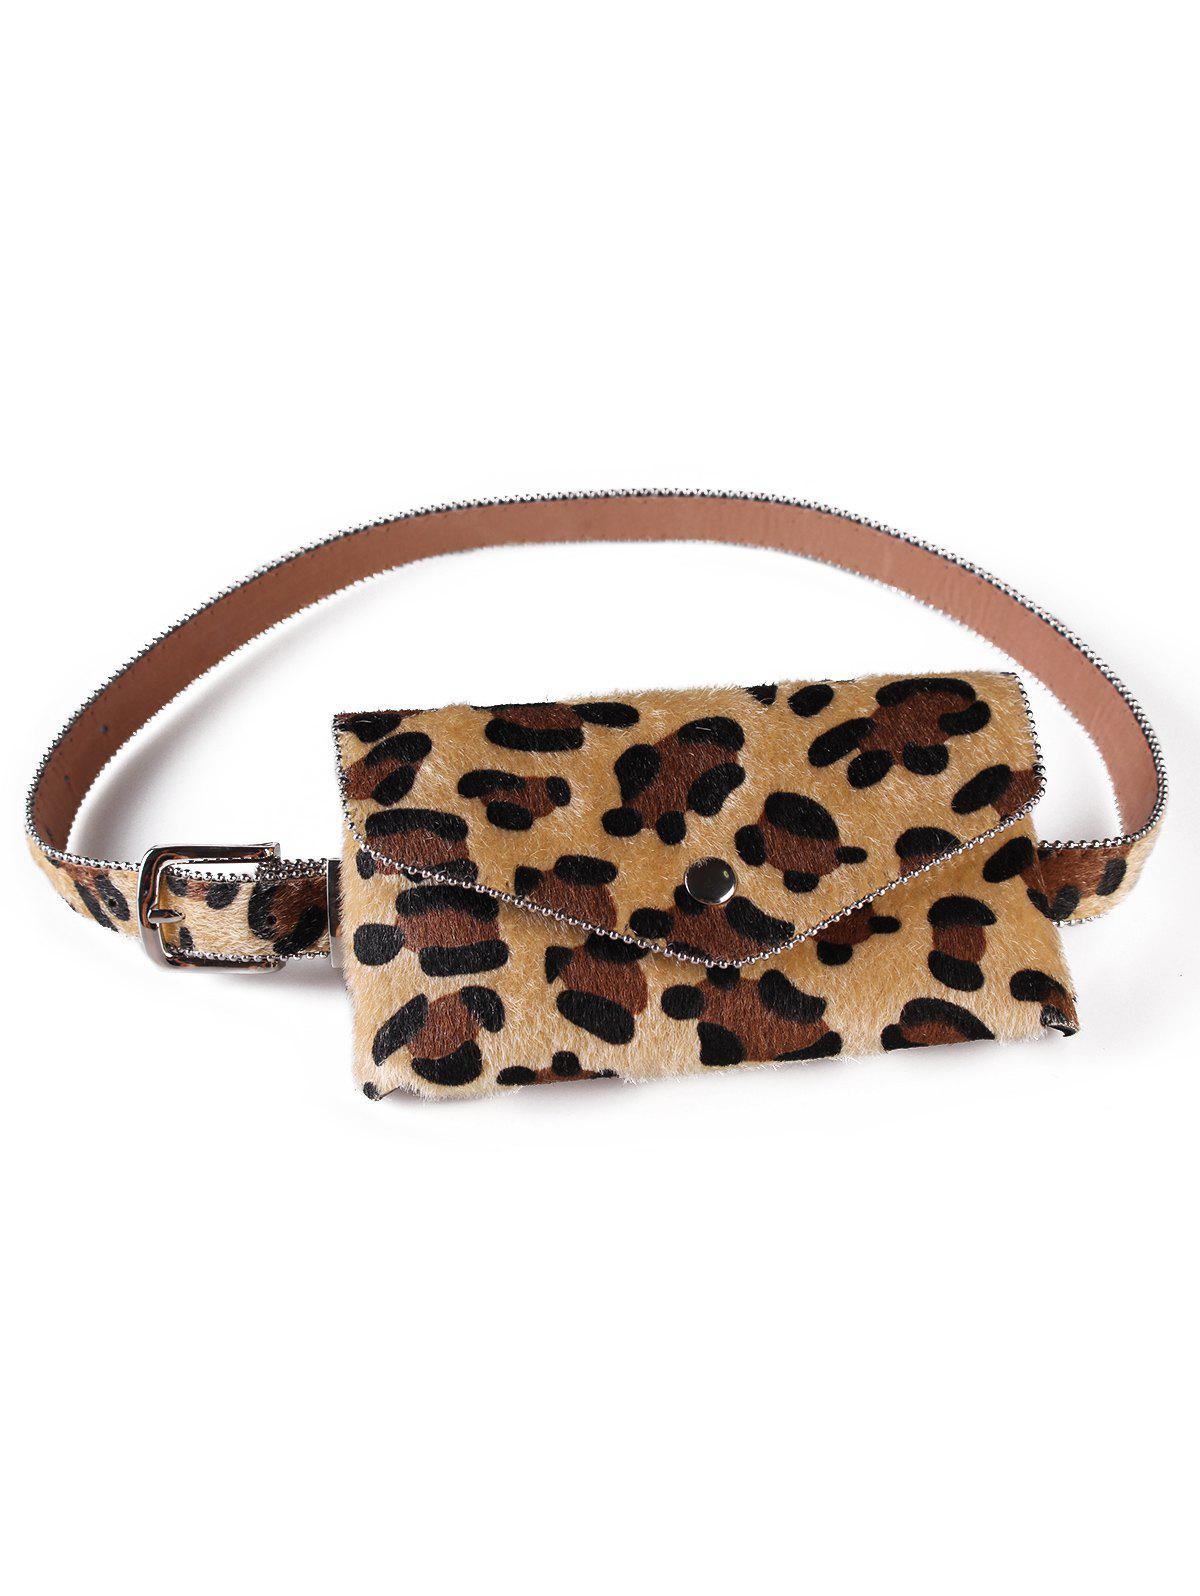 Chic Stylish Leopard Printed Fanny Pack Belt Bag